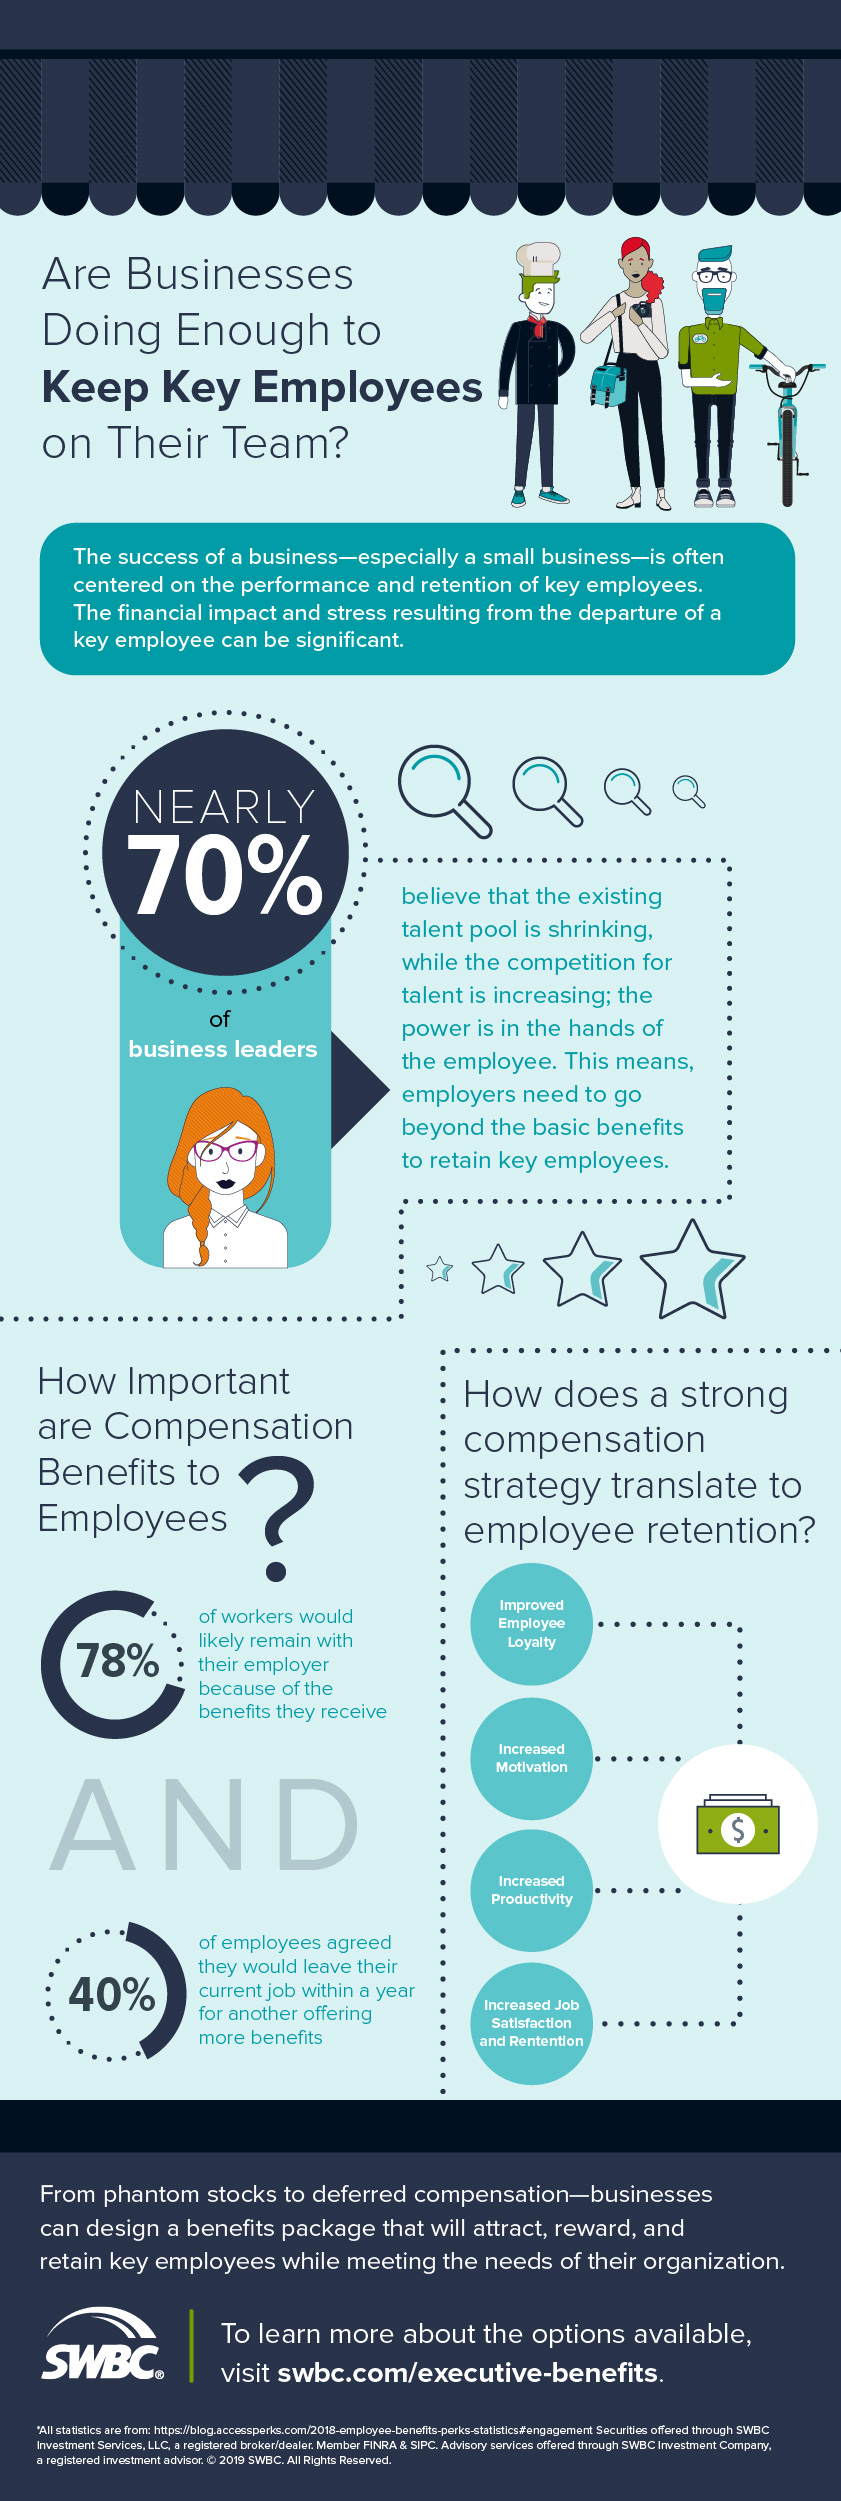 The Importance of Compensation Benefits to Retain and Reward Key Employees (1)